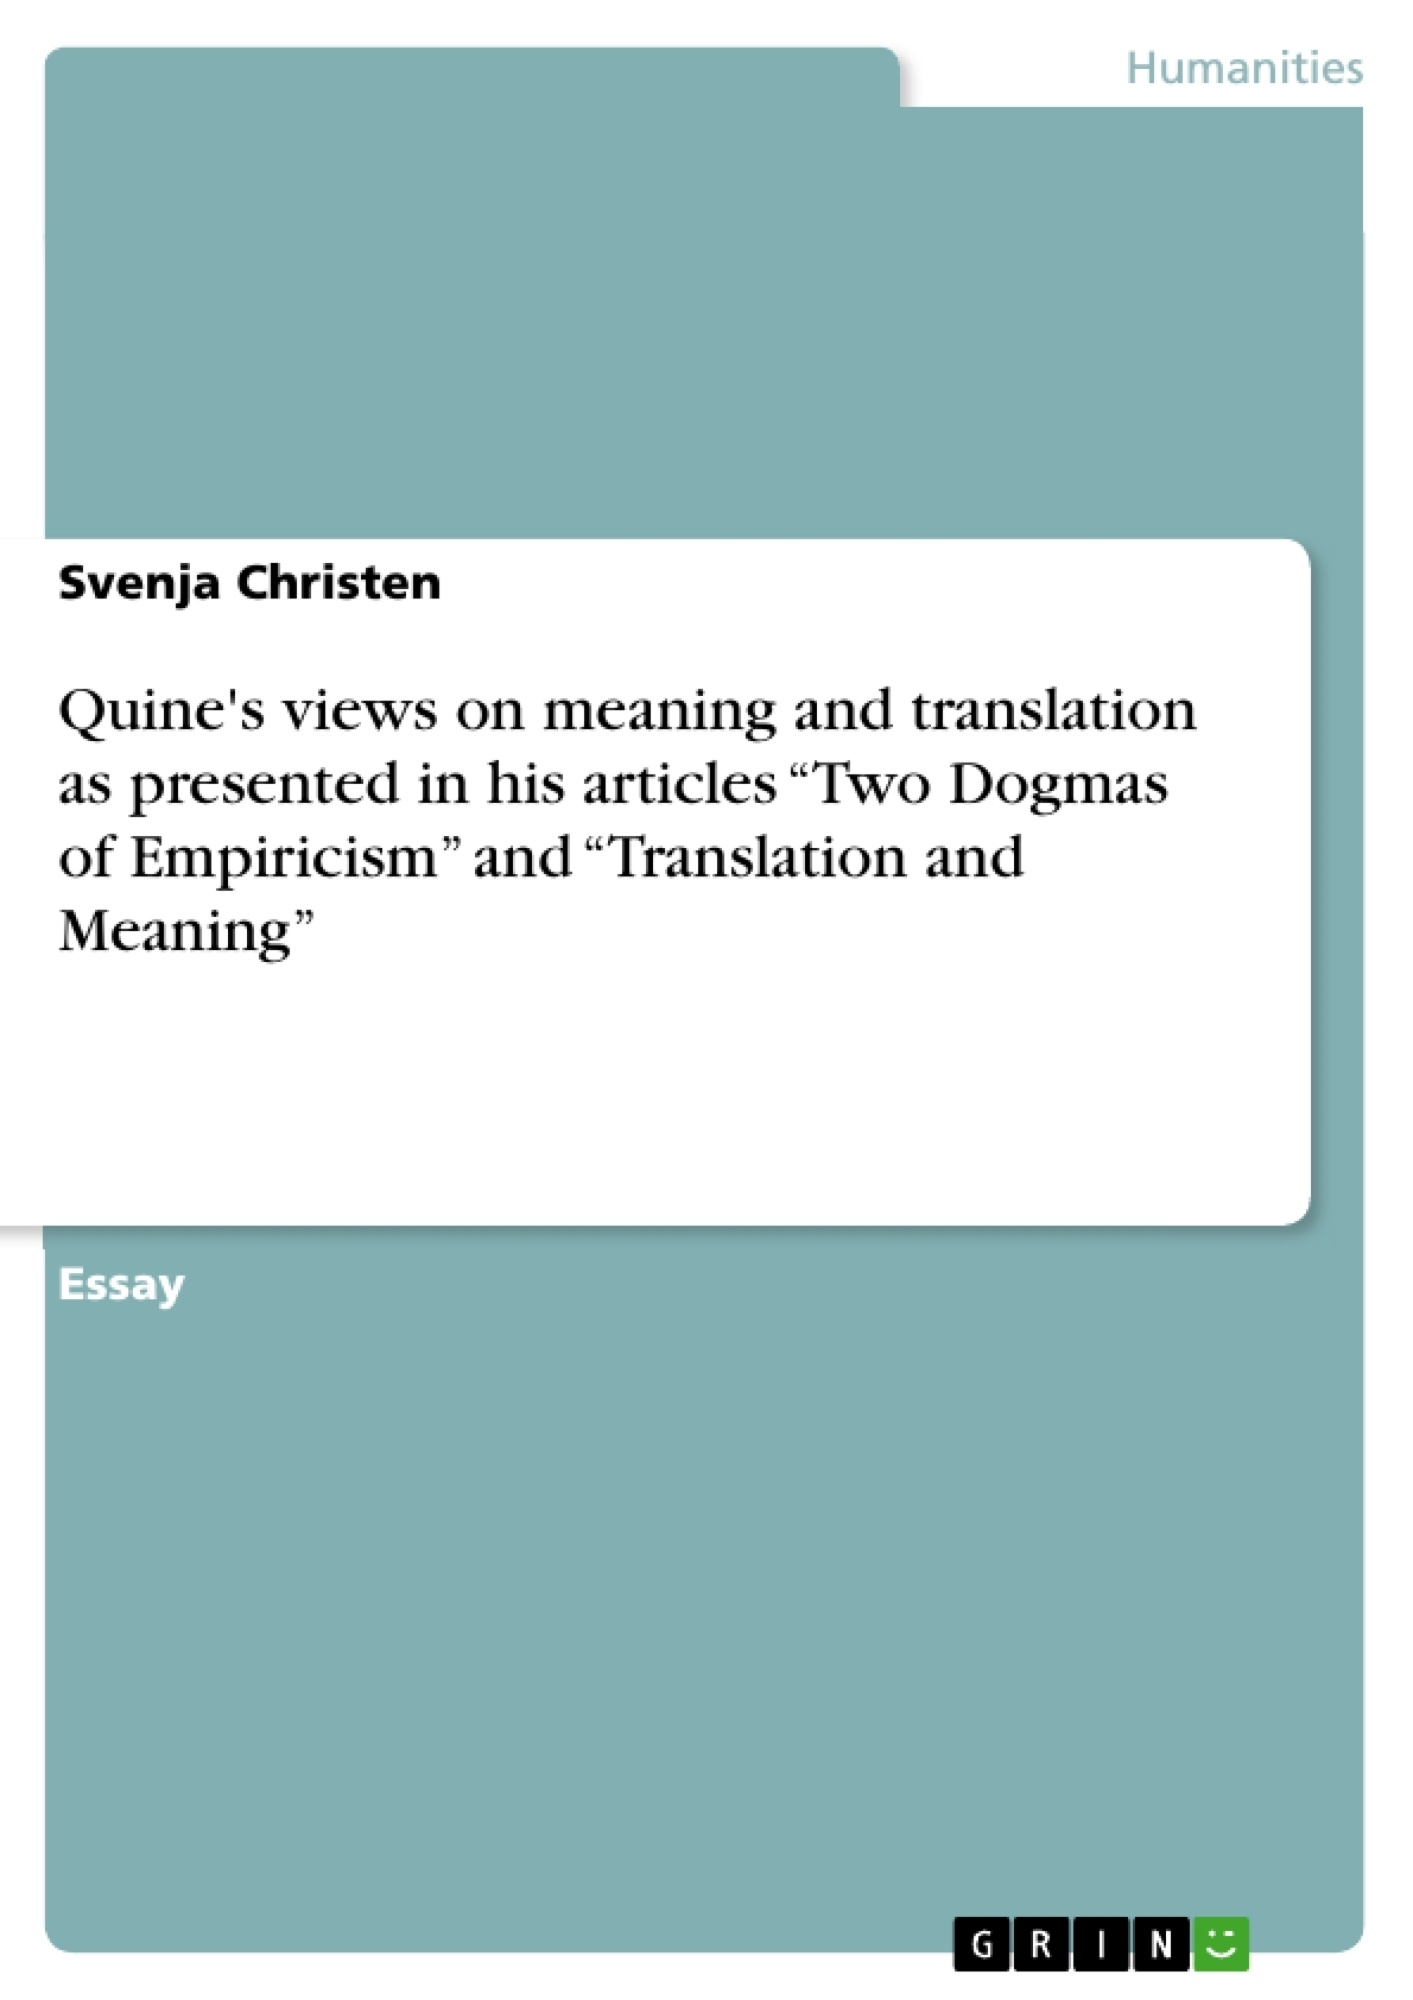 """Title: Quine's views on meaning and translation as presented in his articles """"Two Dogmas of Empiricism"""" and """"Translation and Meaning"""""""